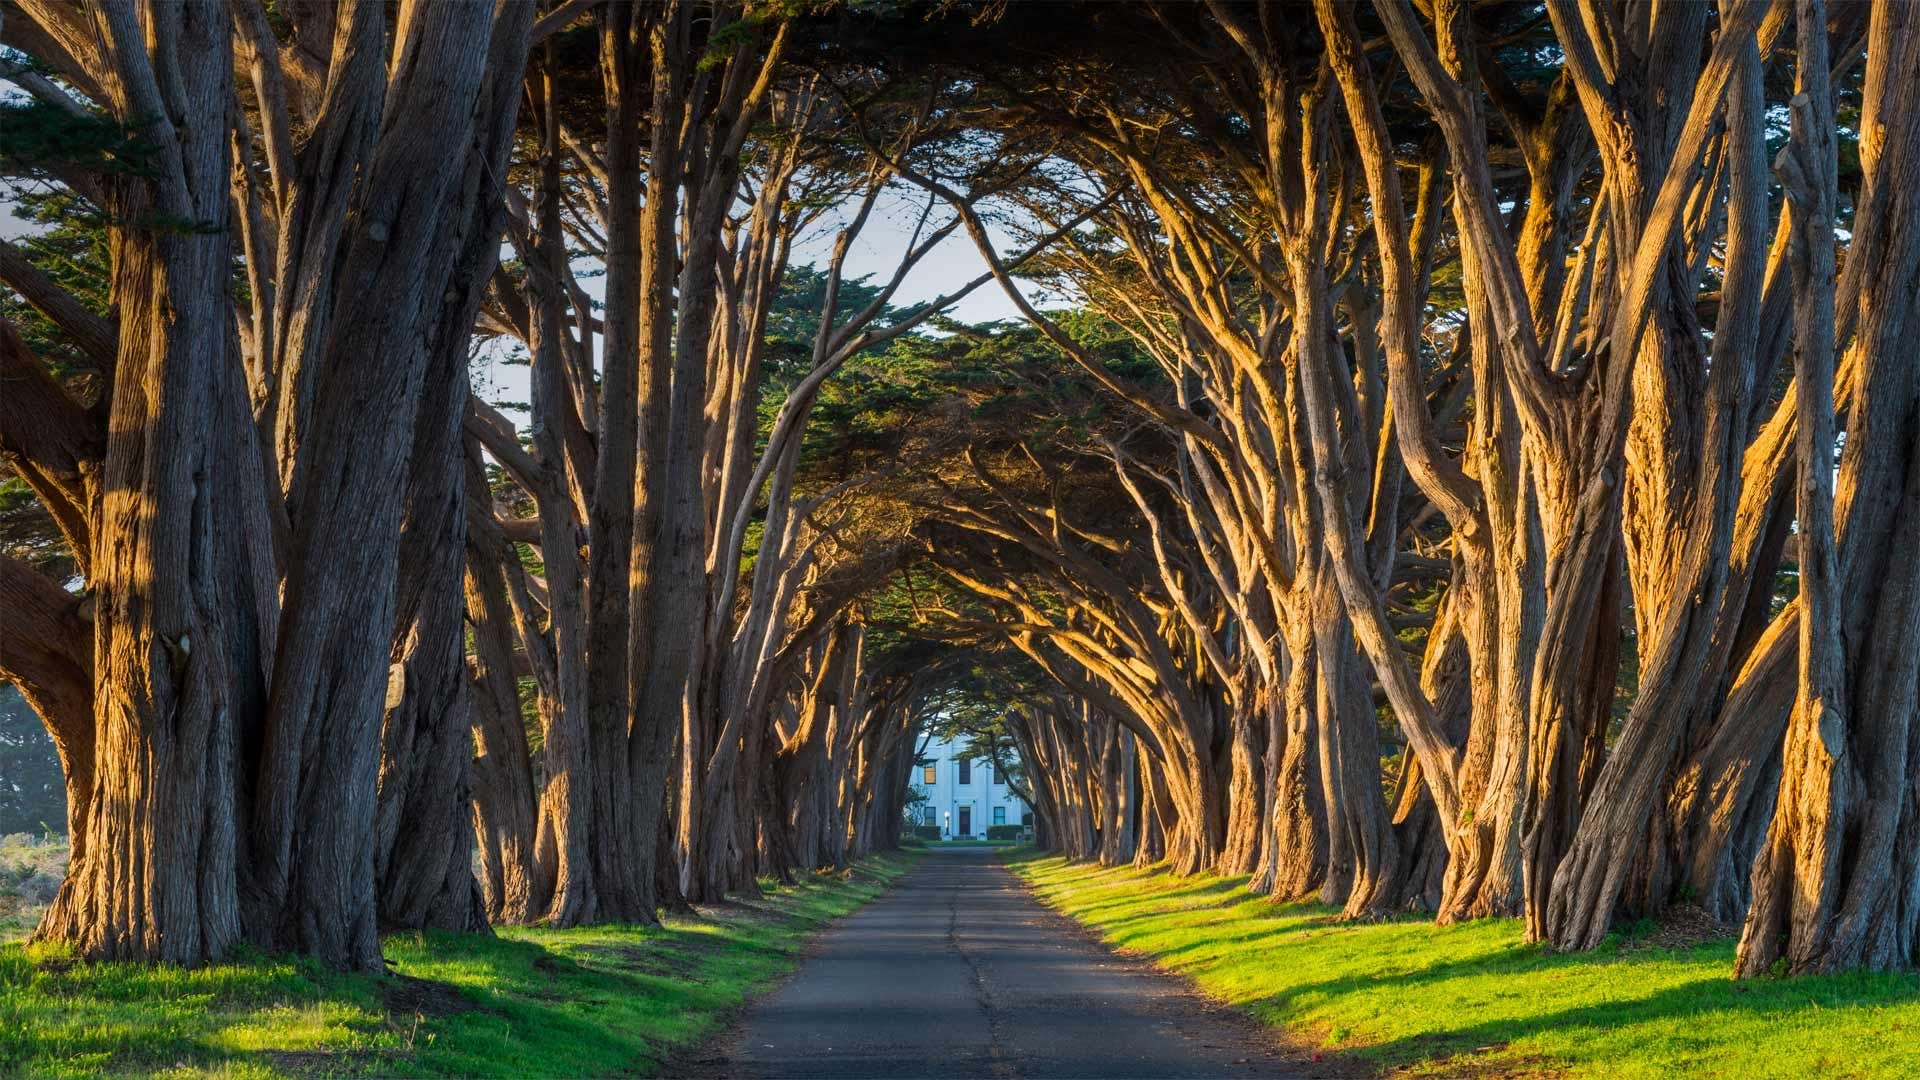 The cypress tunnel at Point Reyes National Seashore in California